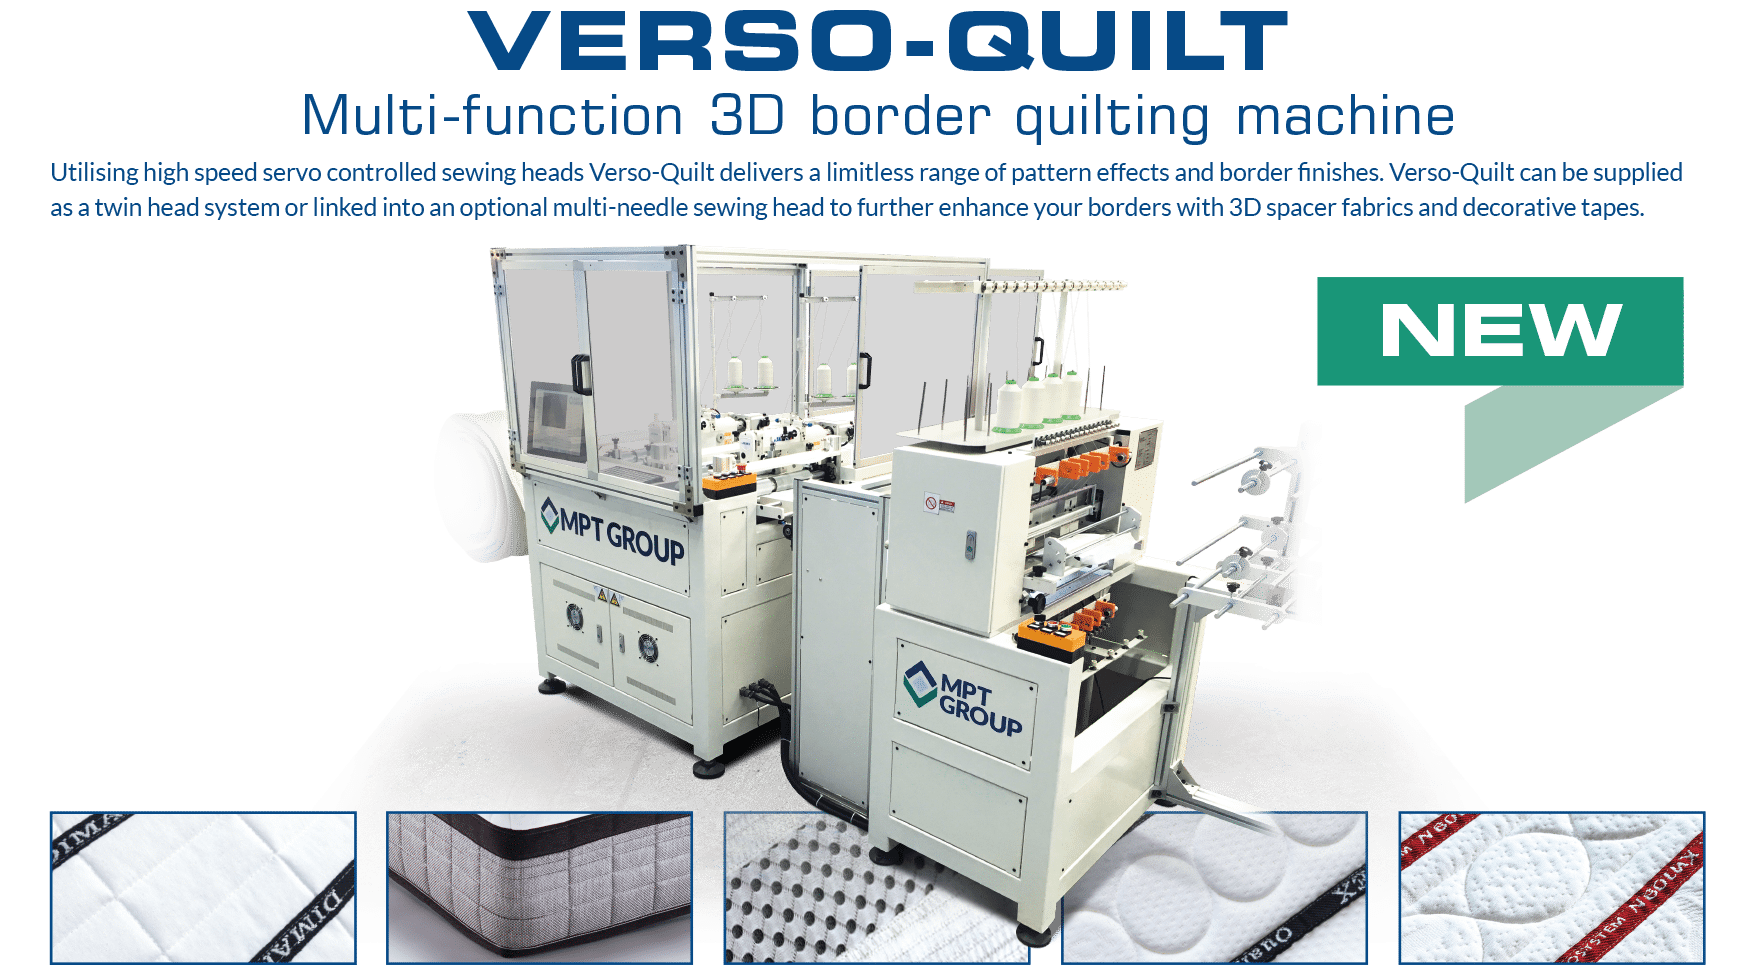 Verso Quilt